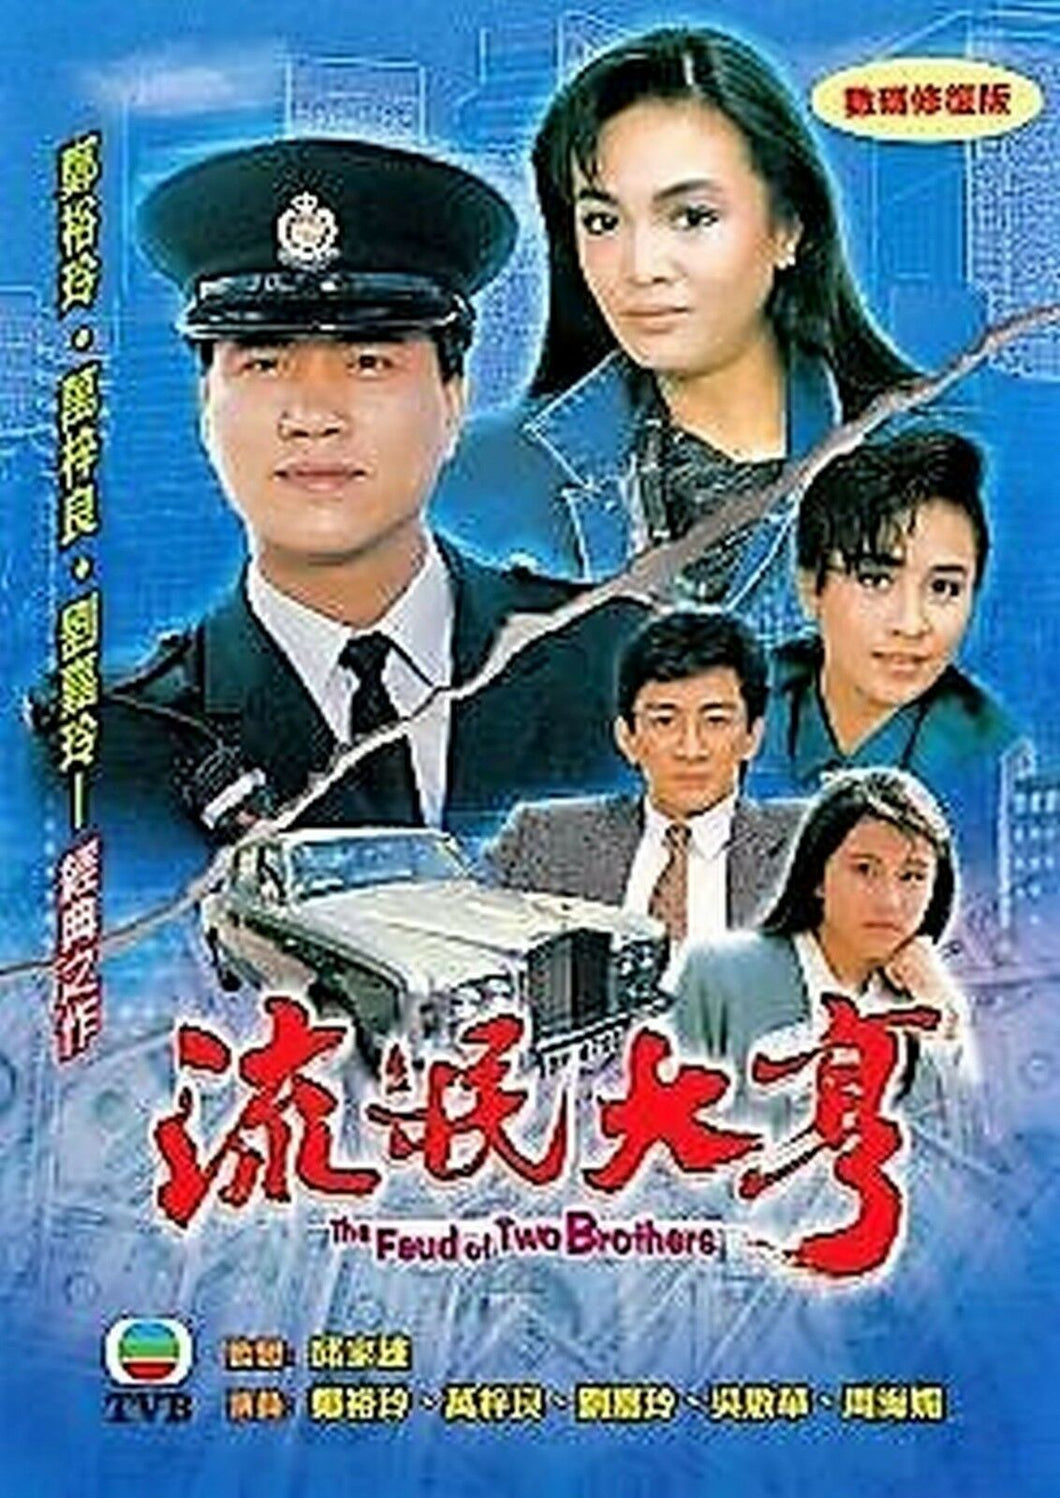 THE FEUD OF TWO BROTHERS 流氓大亨 1986 TVB (6DVD) NON ENGLISH SUB (REGION FREE)